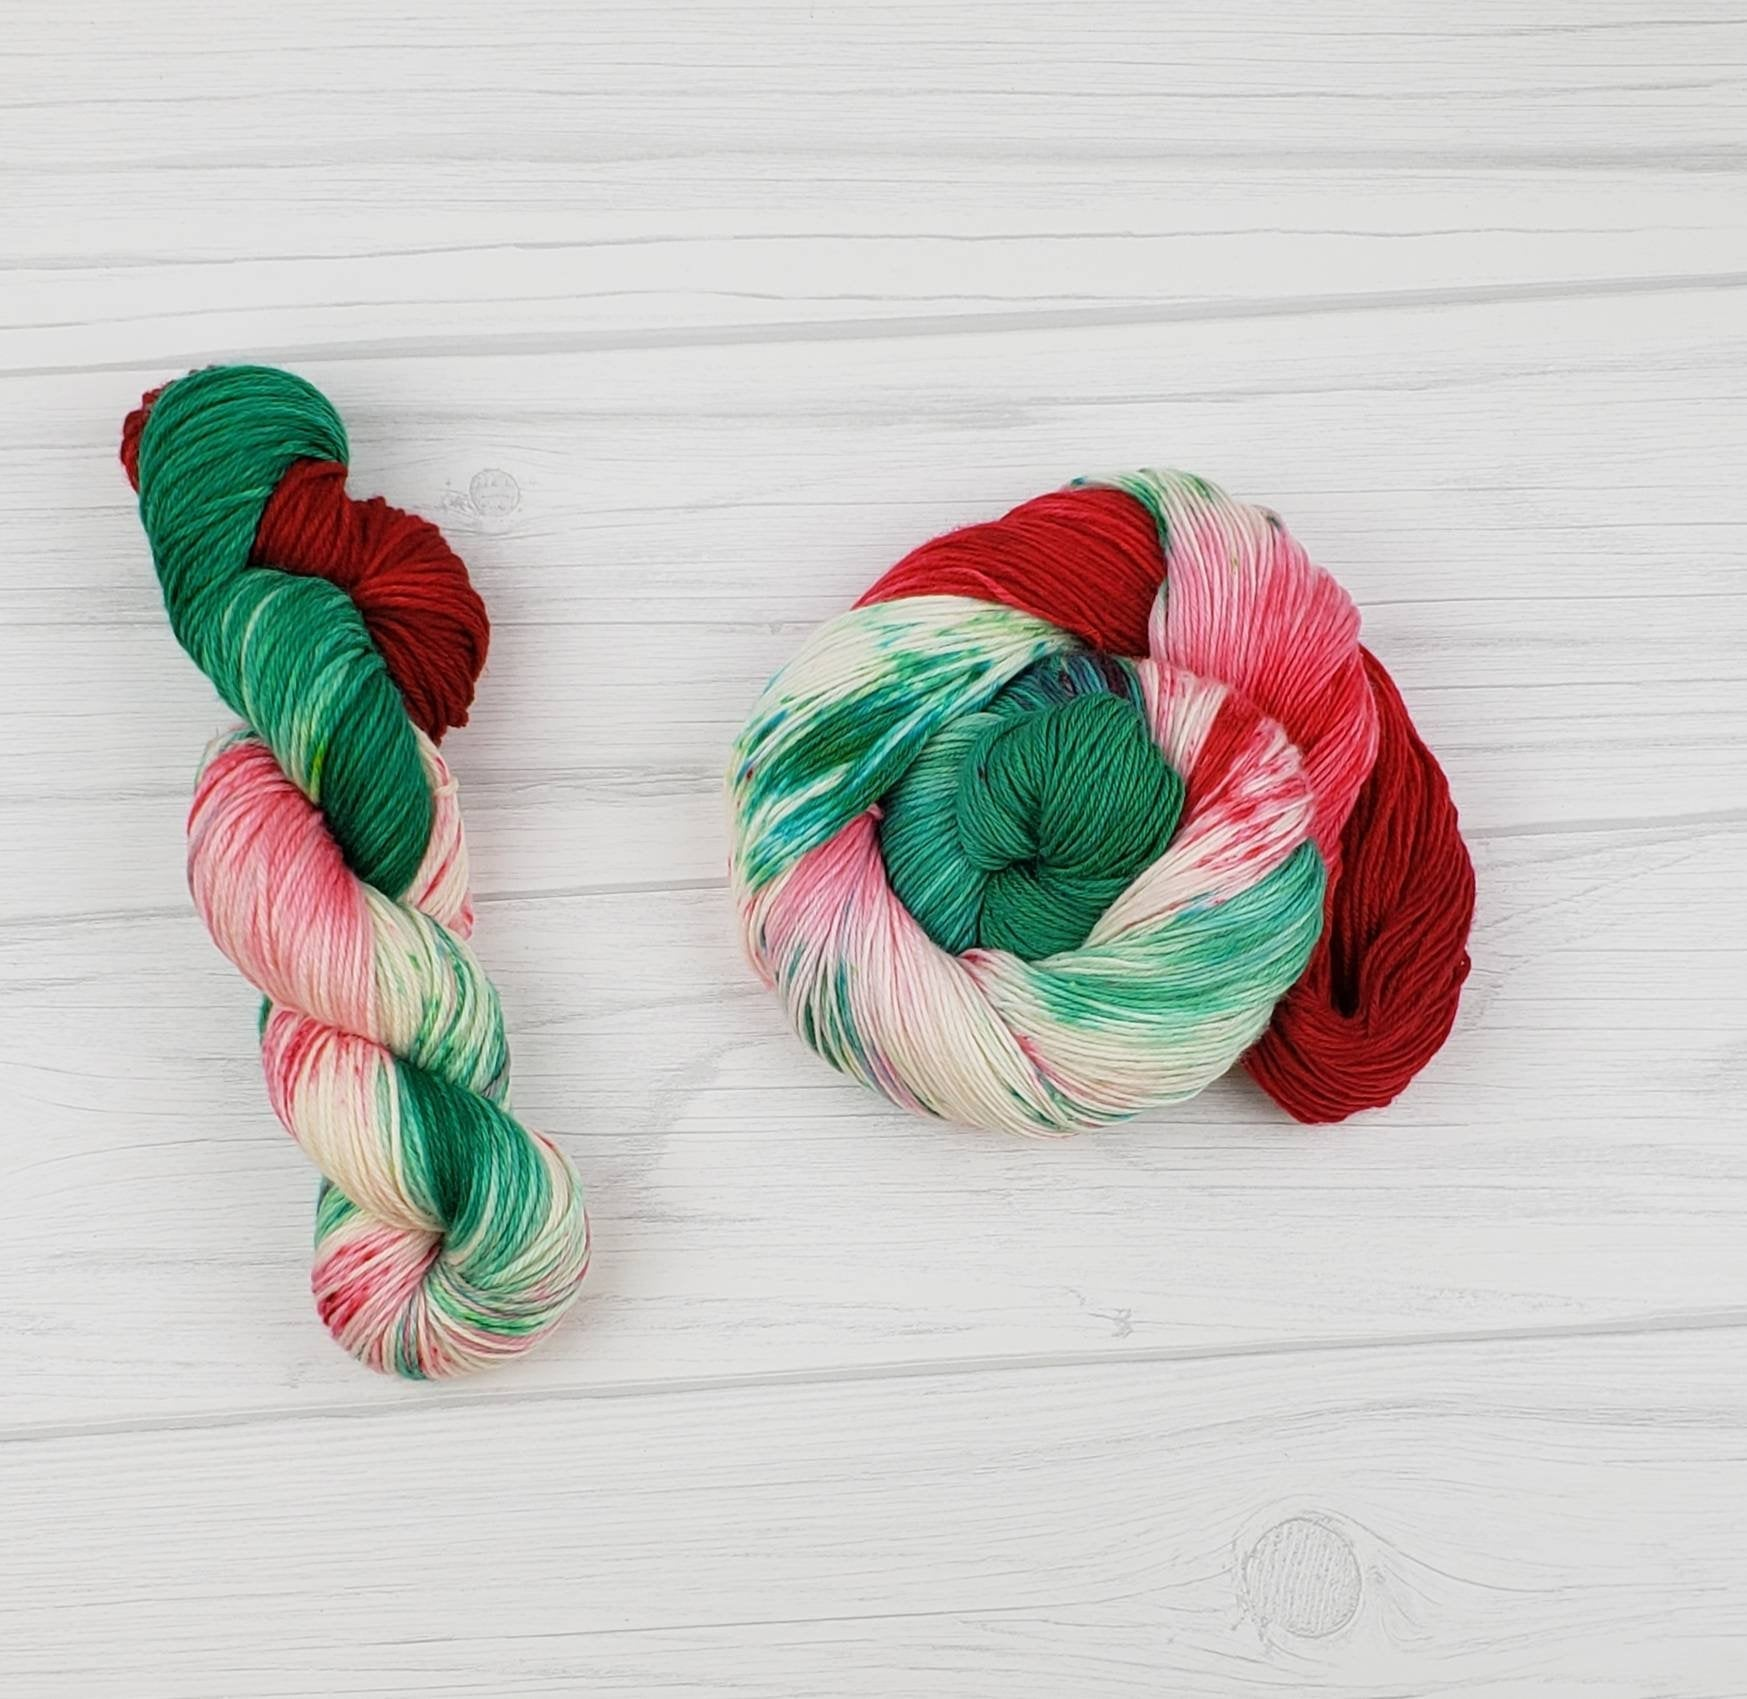 A Christmas Carol, Hand Dyed Yarn in Worsted Weight - Spindle warps yarns